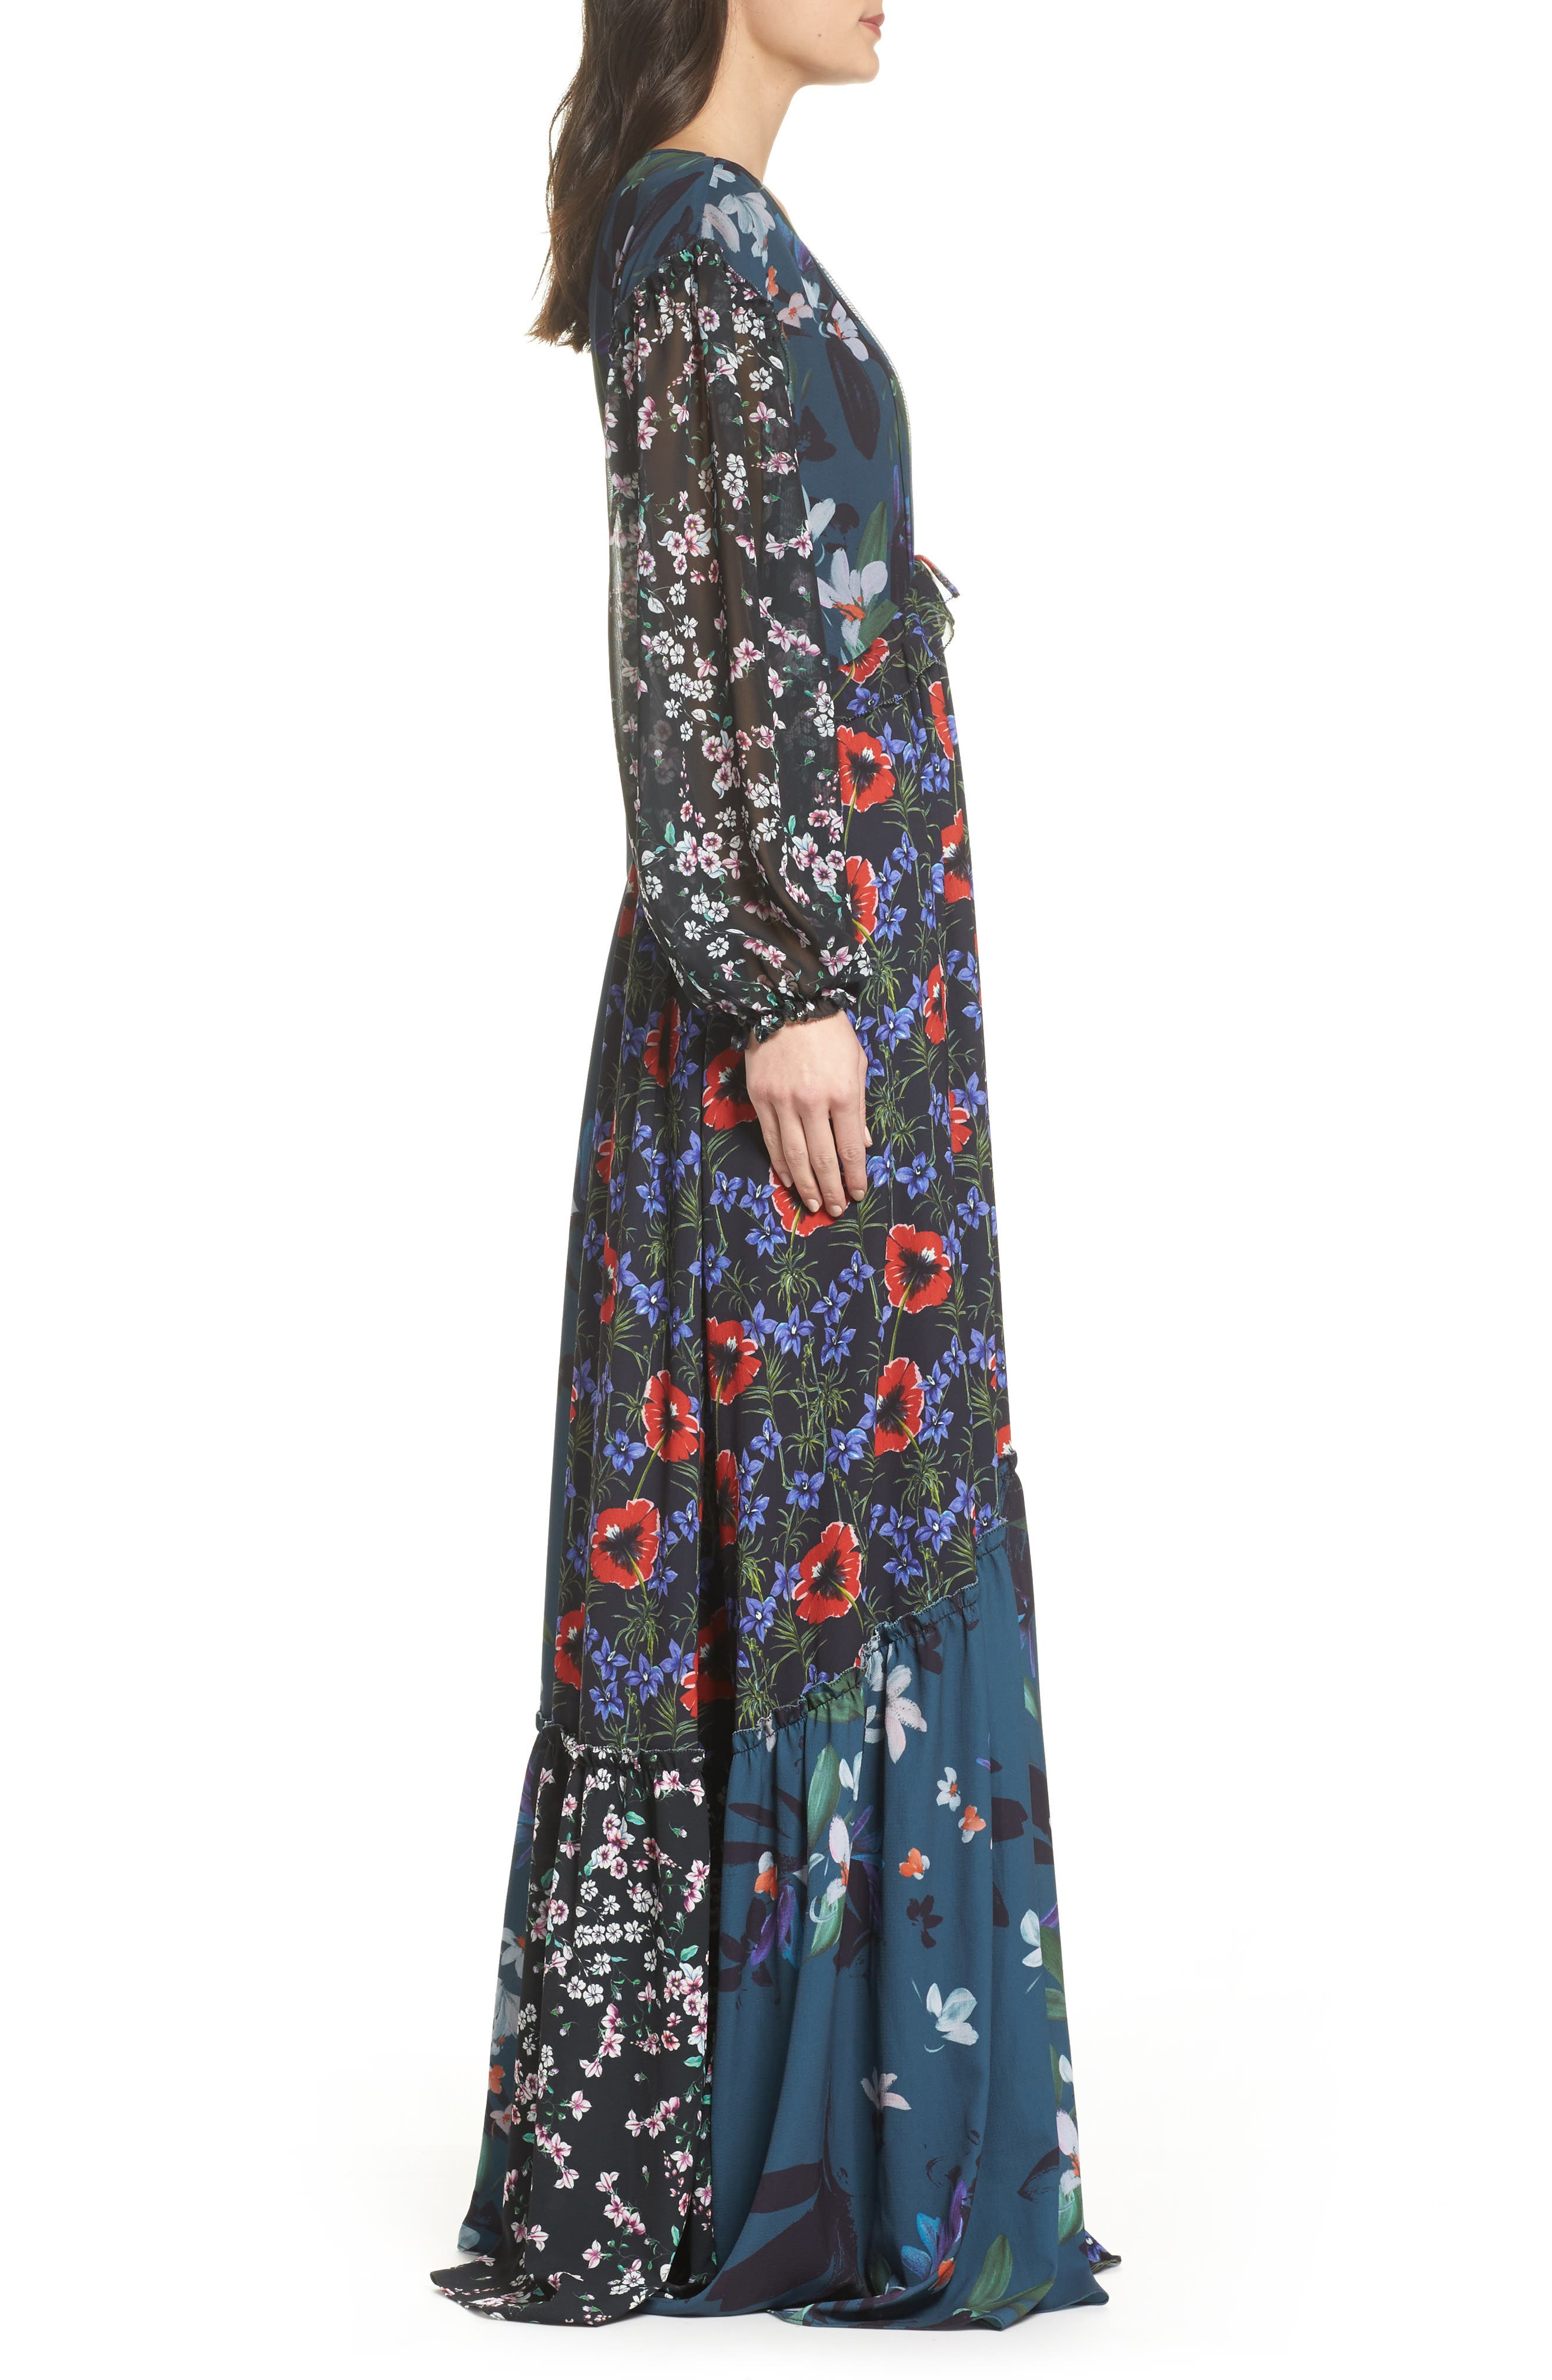 Celia Mix Floral Maxi Dress,                             Alternate thumbnail 3, color,                             Deep Teal Multi